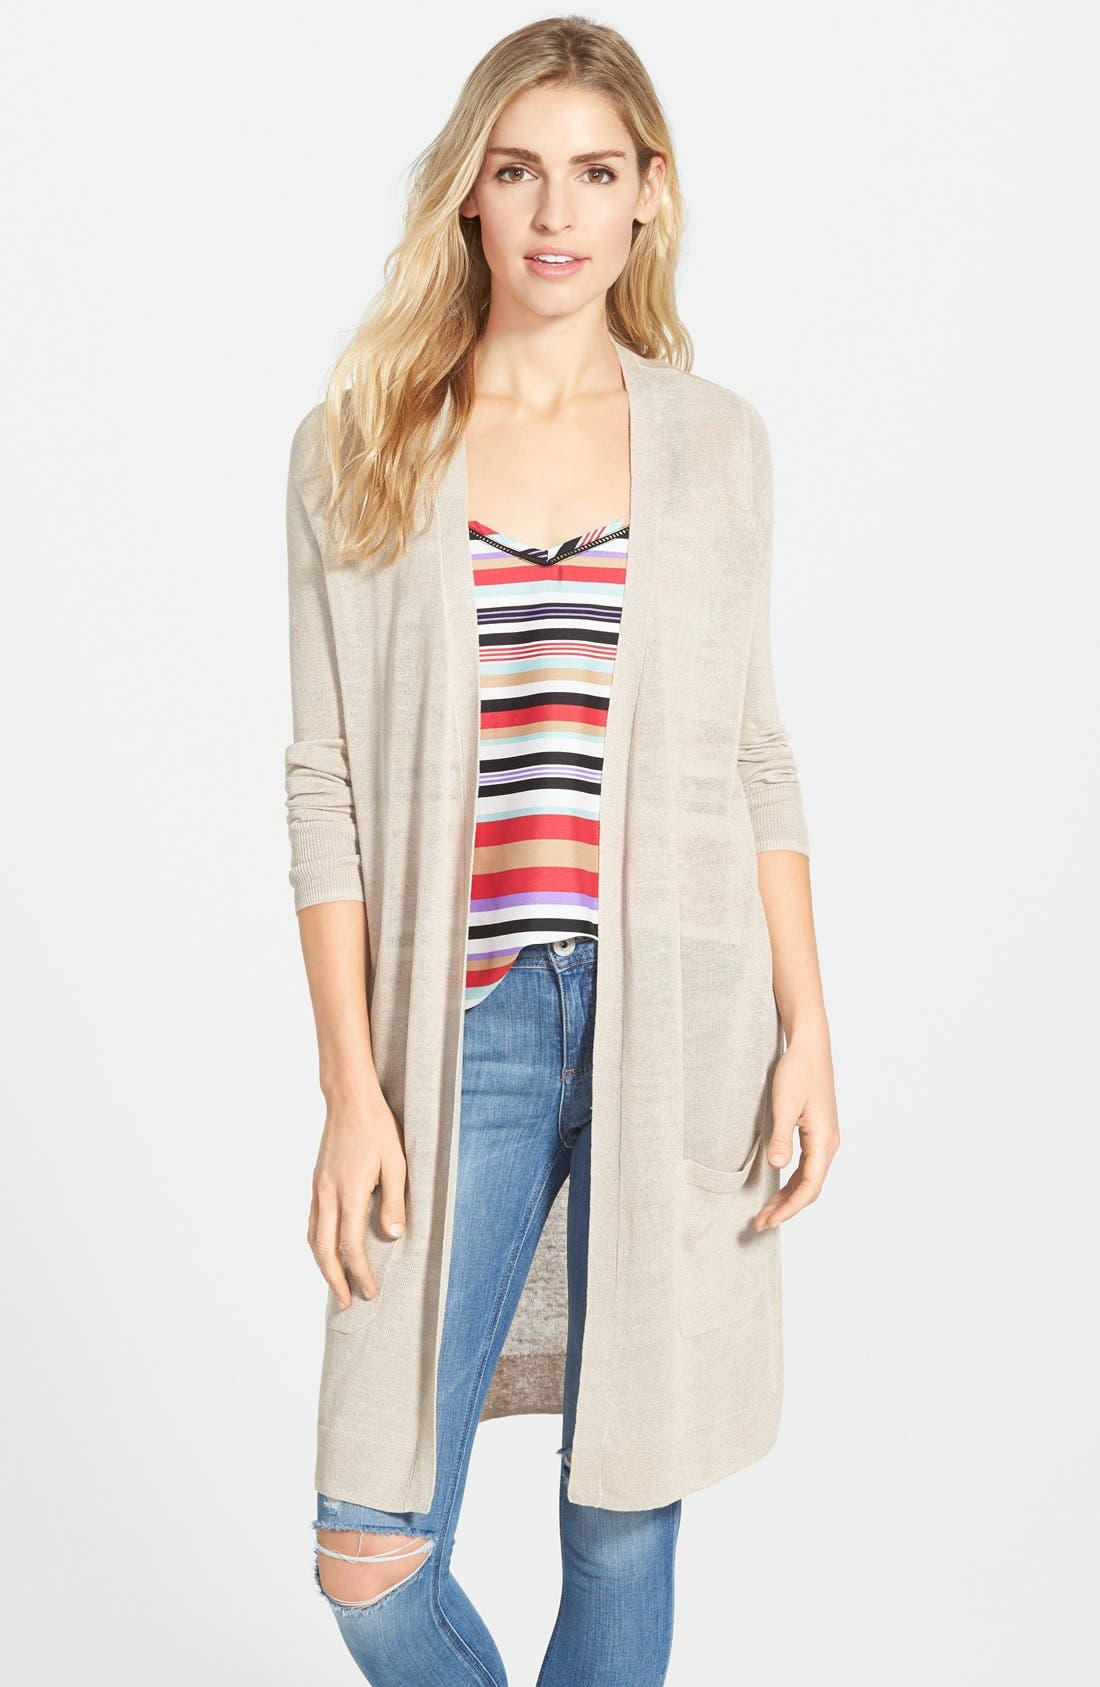 Women's Linen Cardigan Sweaters: Long, Cropped & More | Nordstrom ...